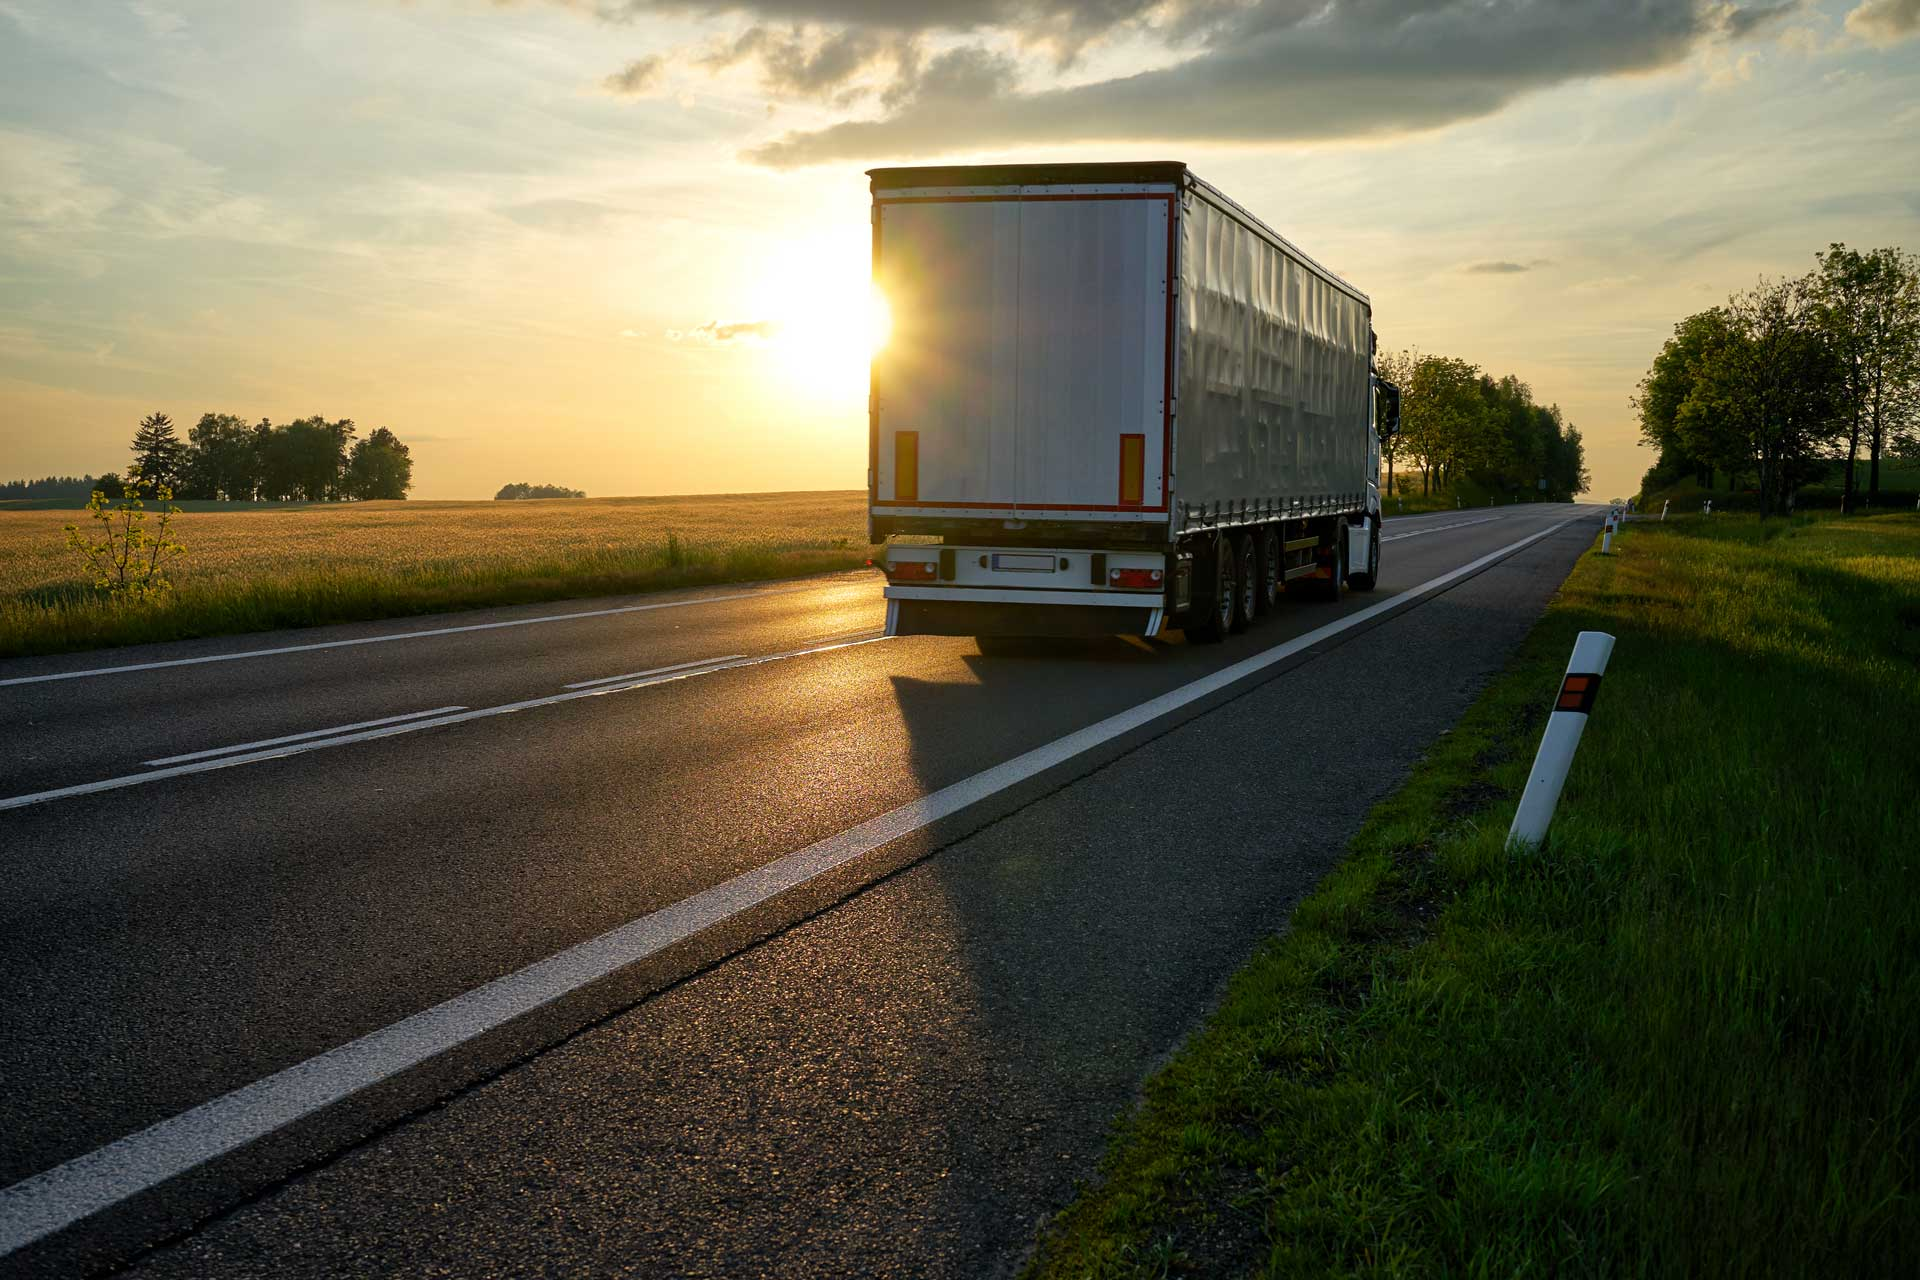 """Truck departing towards the horizon on an asphalt road in a rural countryside at sunset. """